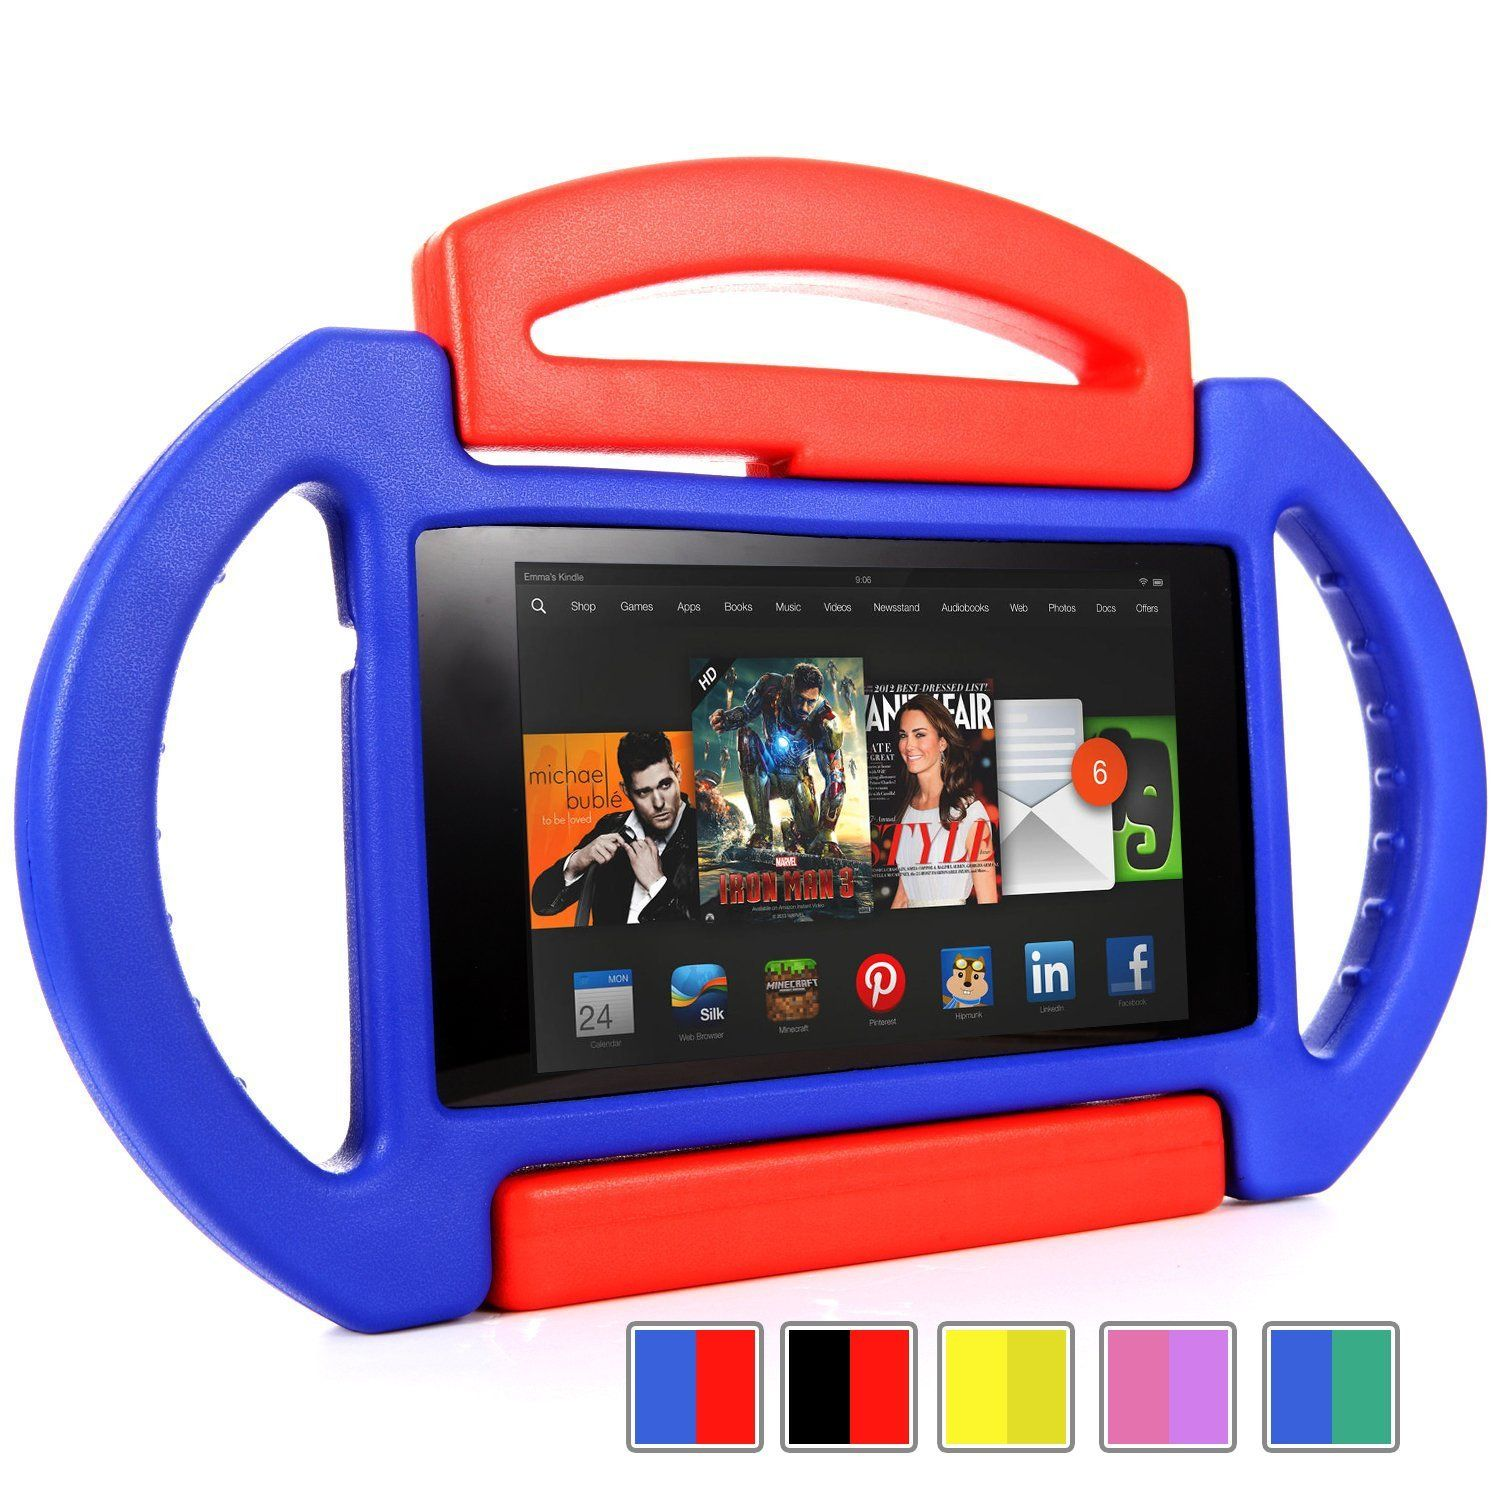 2f3661a90dc0 Poetic Kid Series Case for New Kindle Fire HDX 7 inch (2013) Tablet Blue/Red